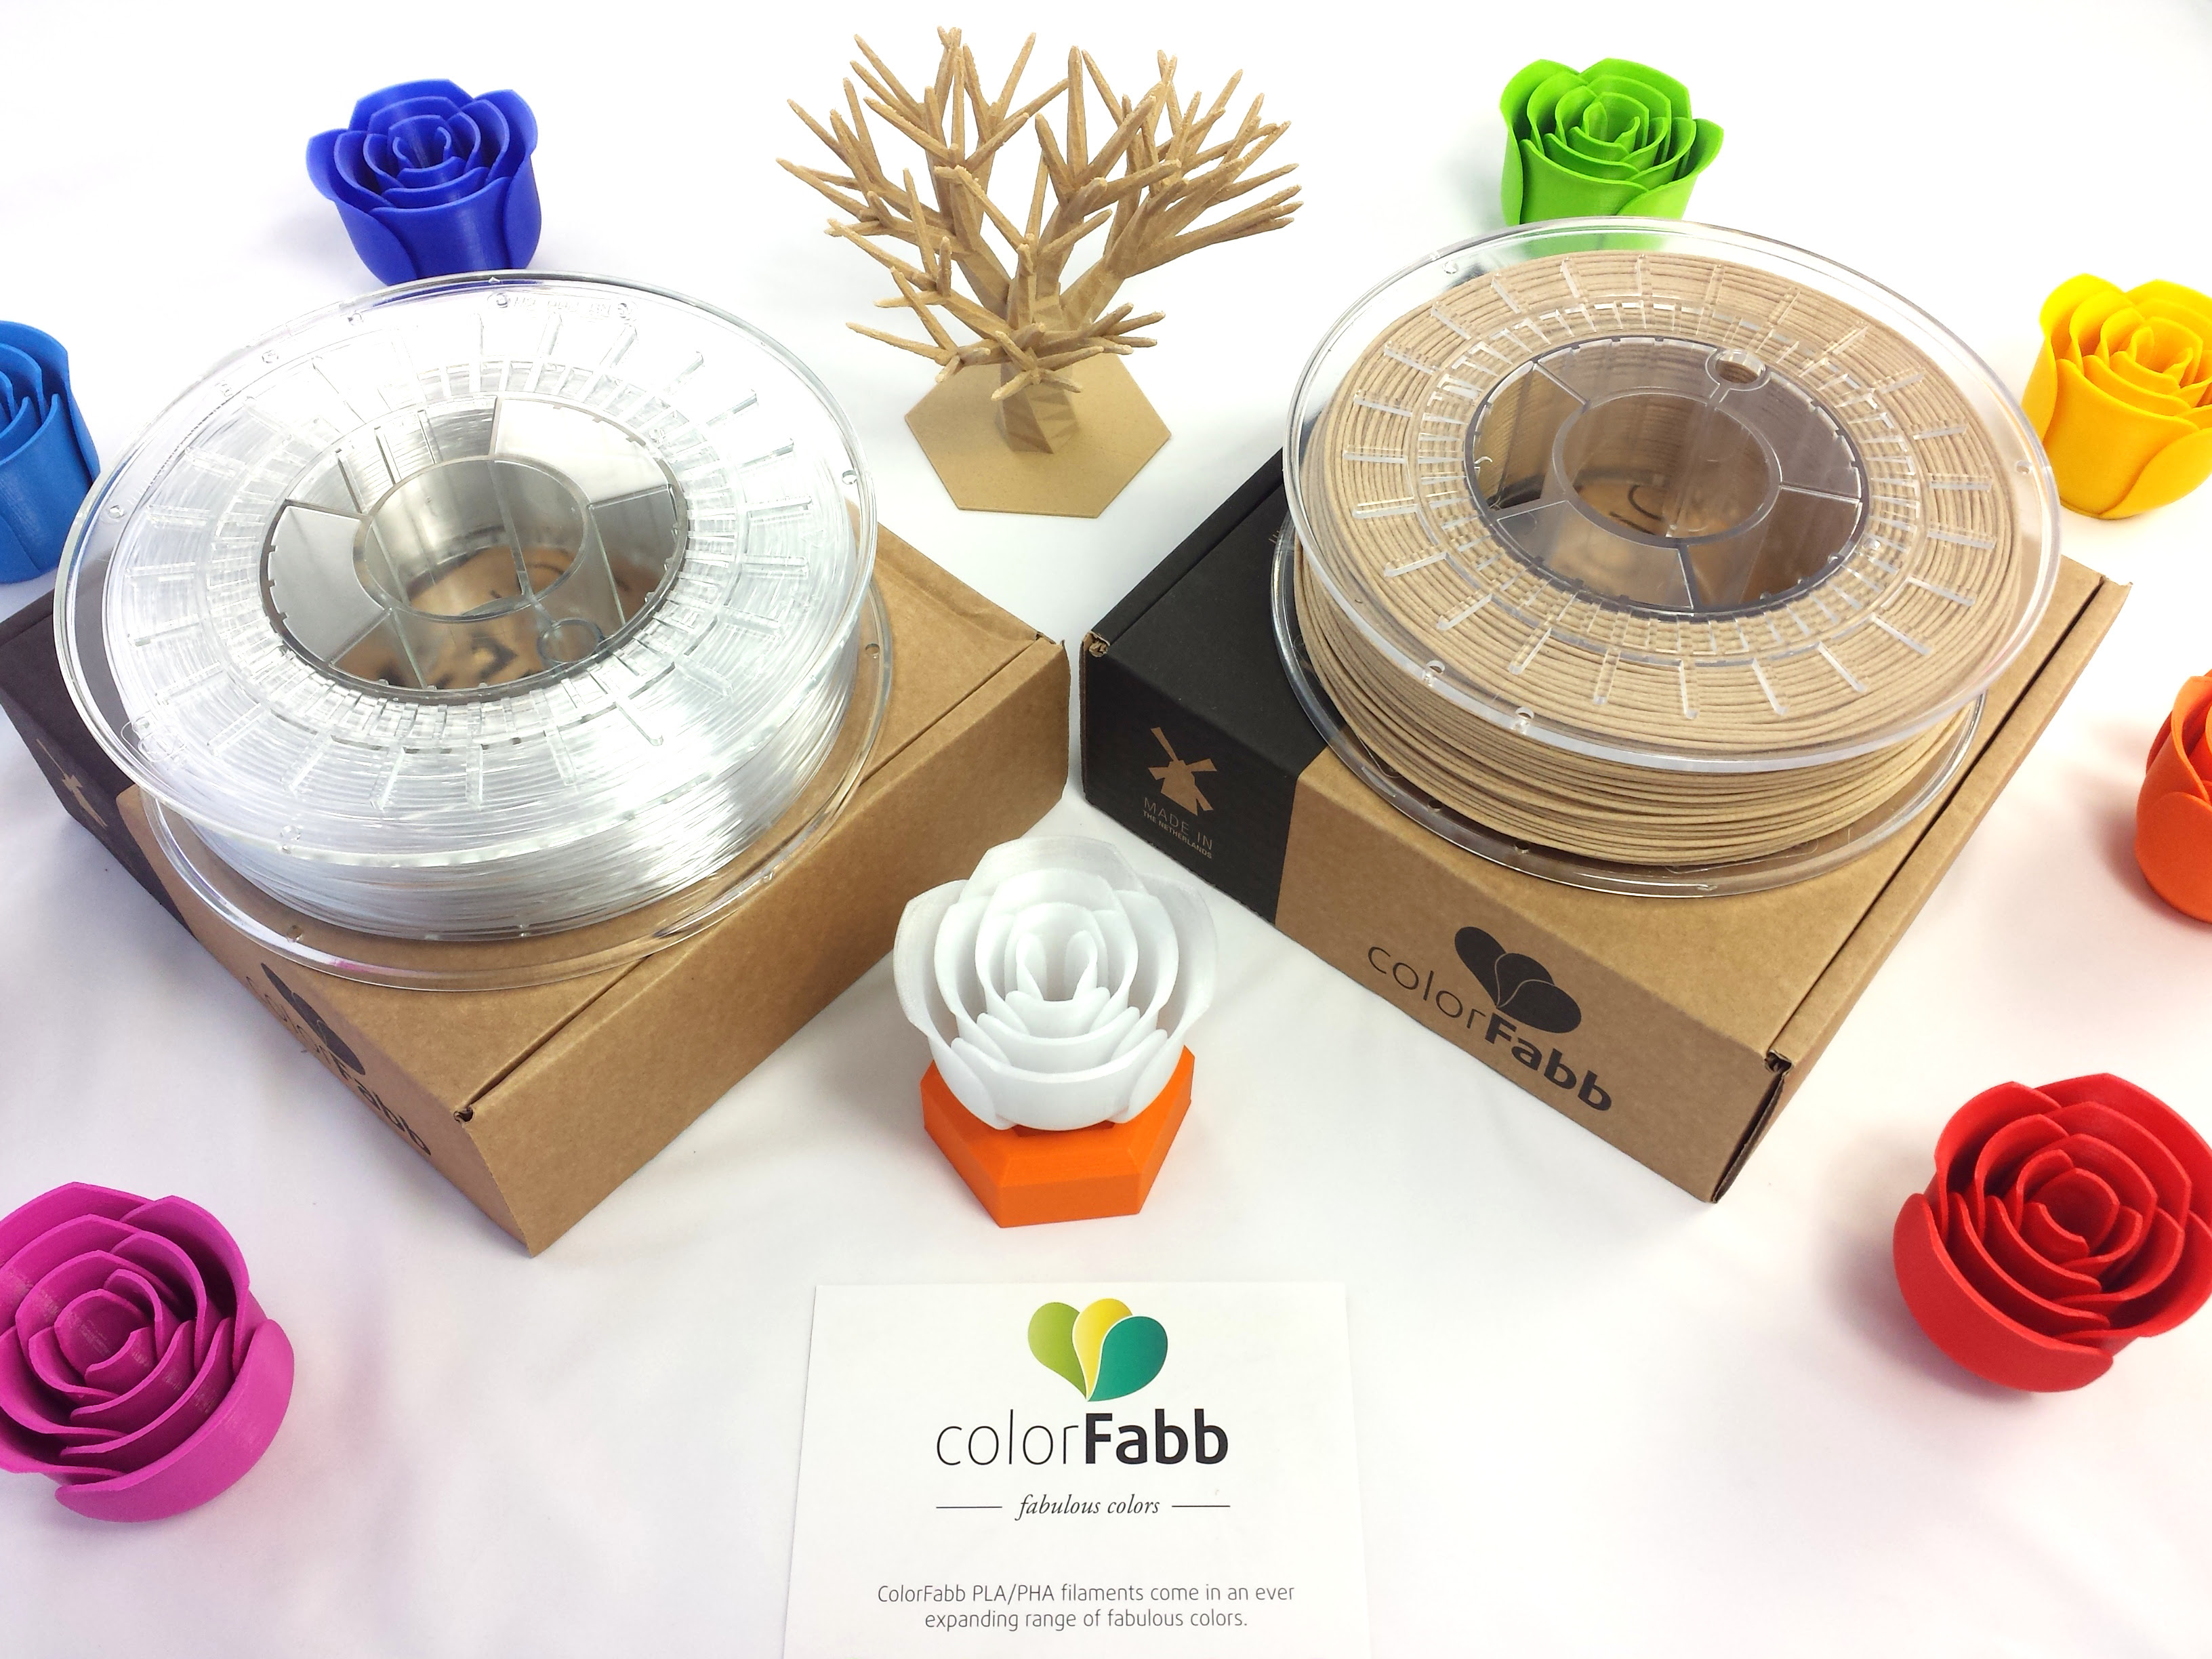 ColorFabb NEW _XT formula and WoodFill FINE now available at Voxel Factory!